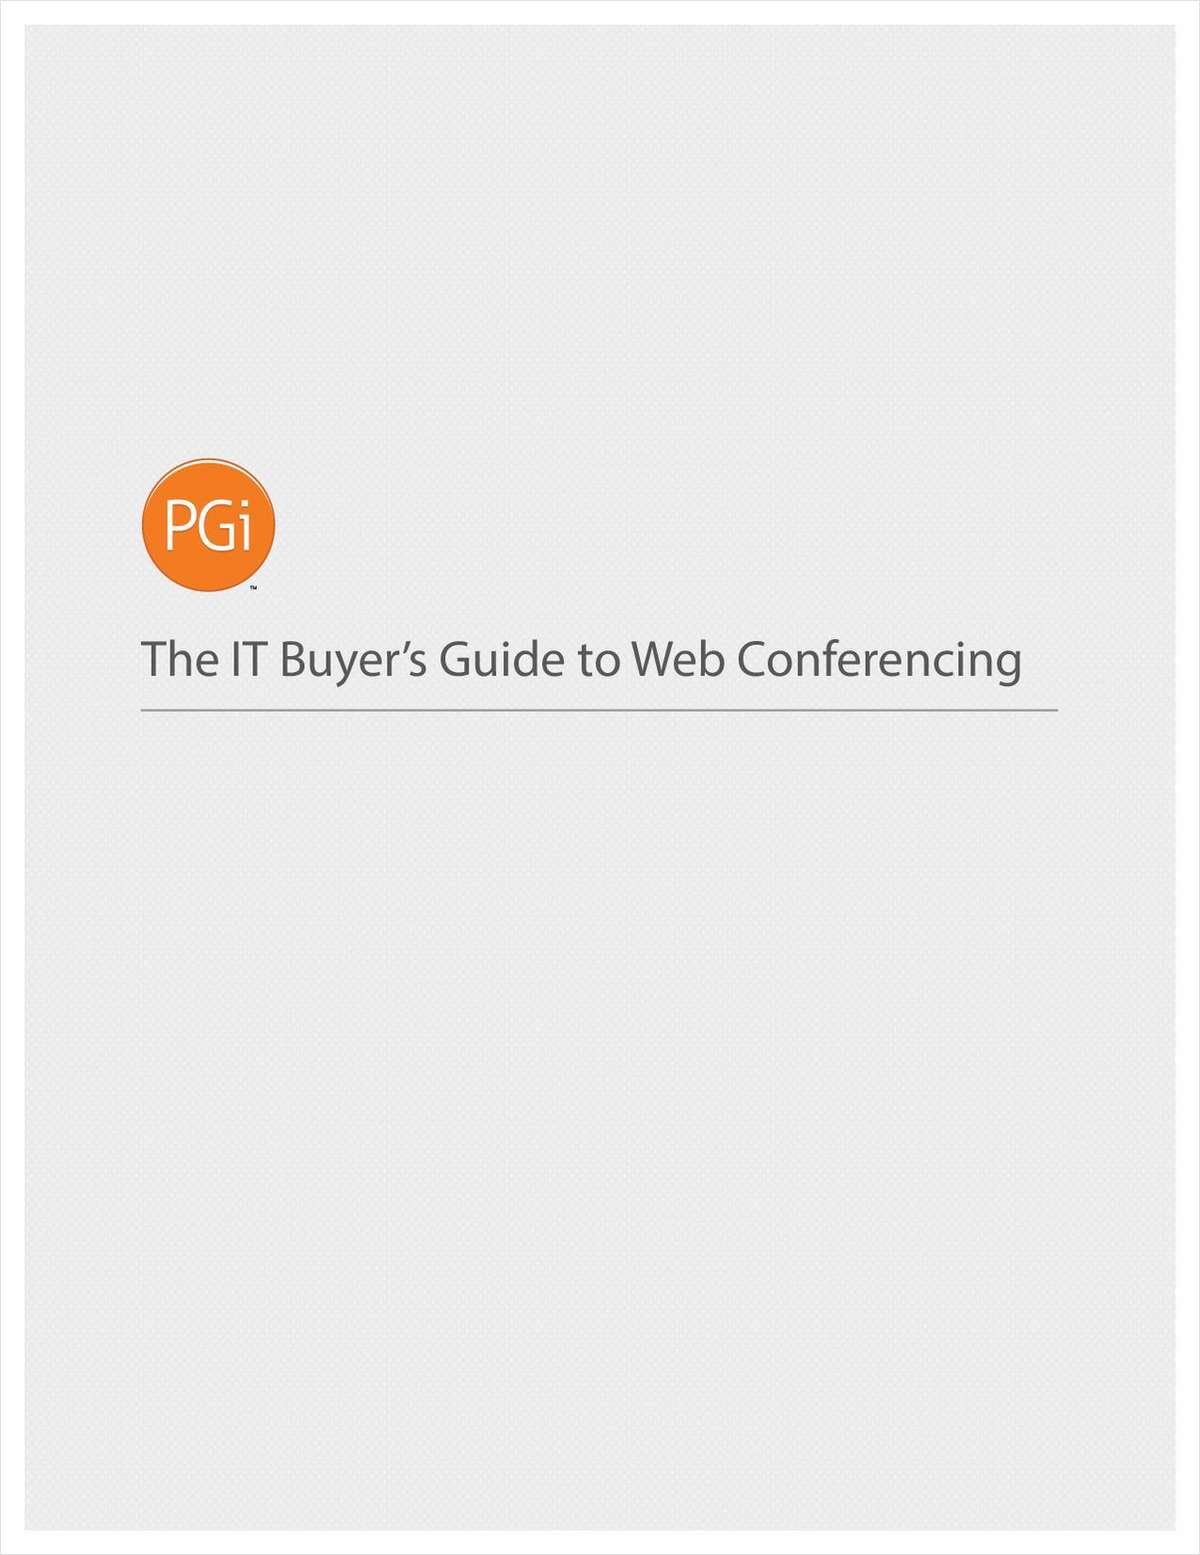 IT Buyer's Guide to Web Conferencing